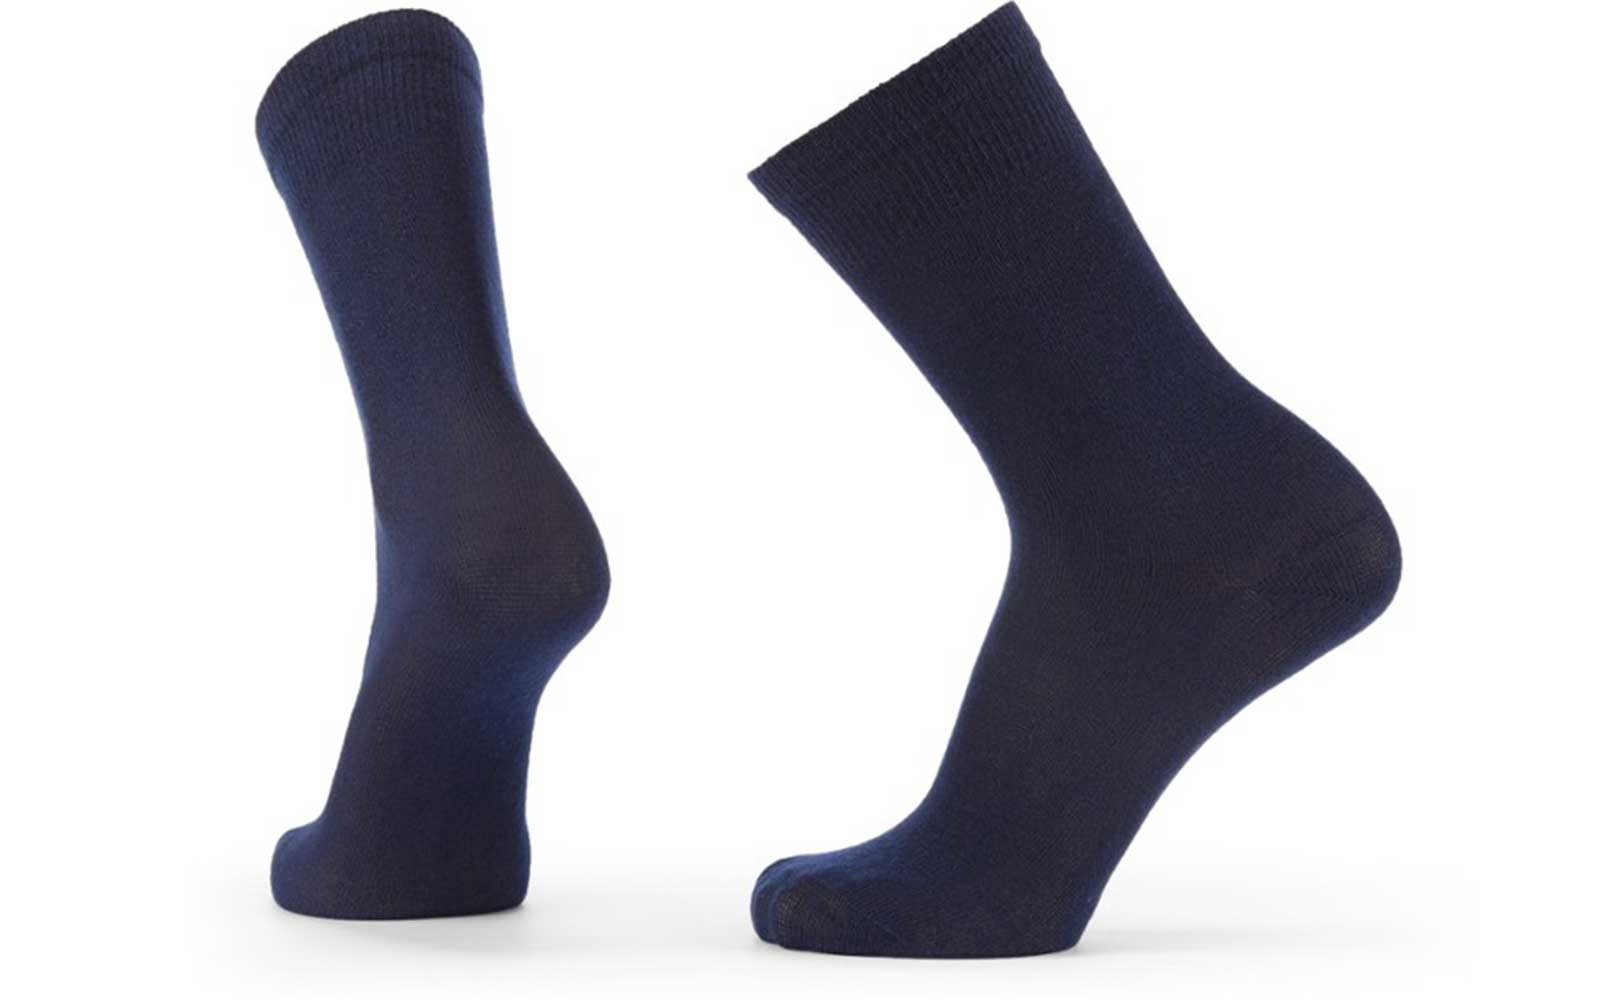 REI Sock Liners for Winter